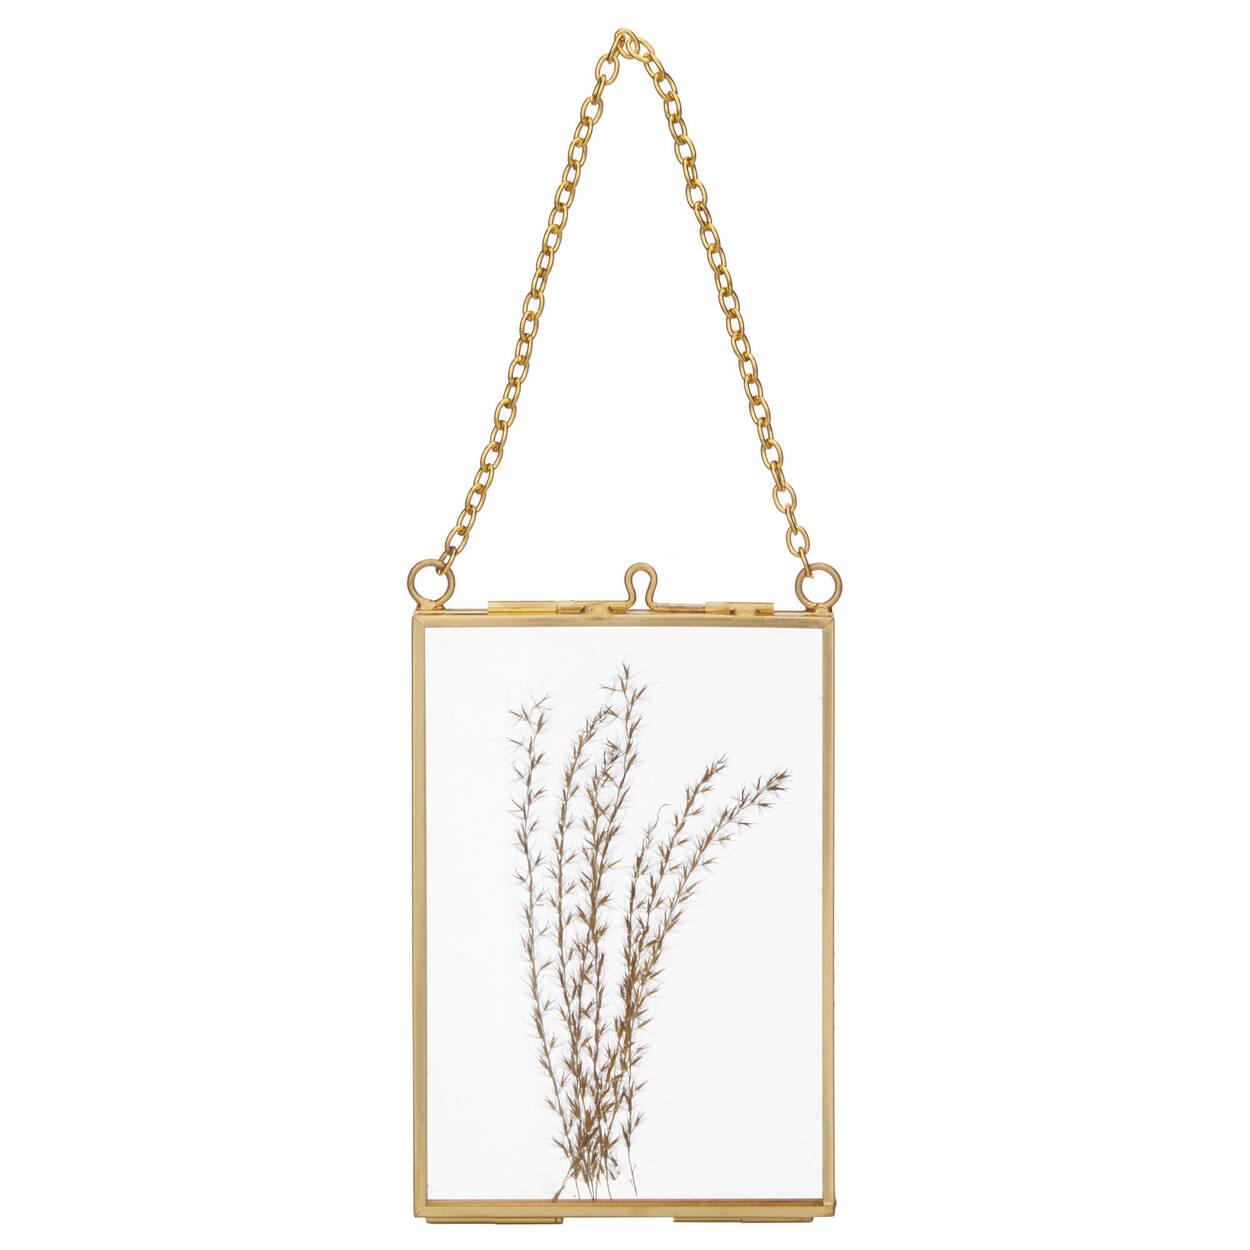 Small Gold Framed with Pampas